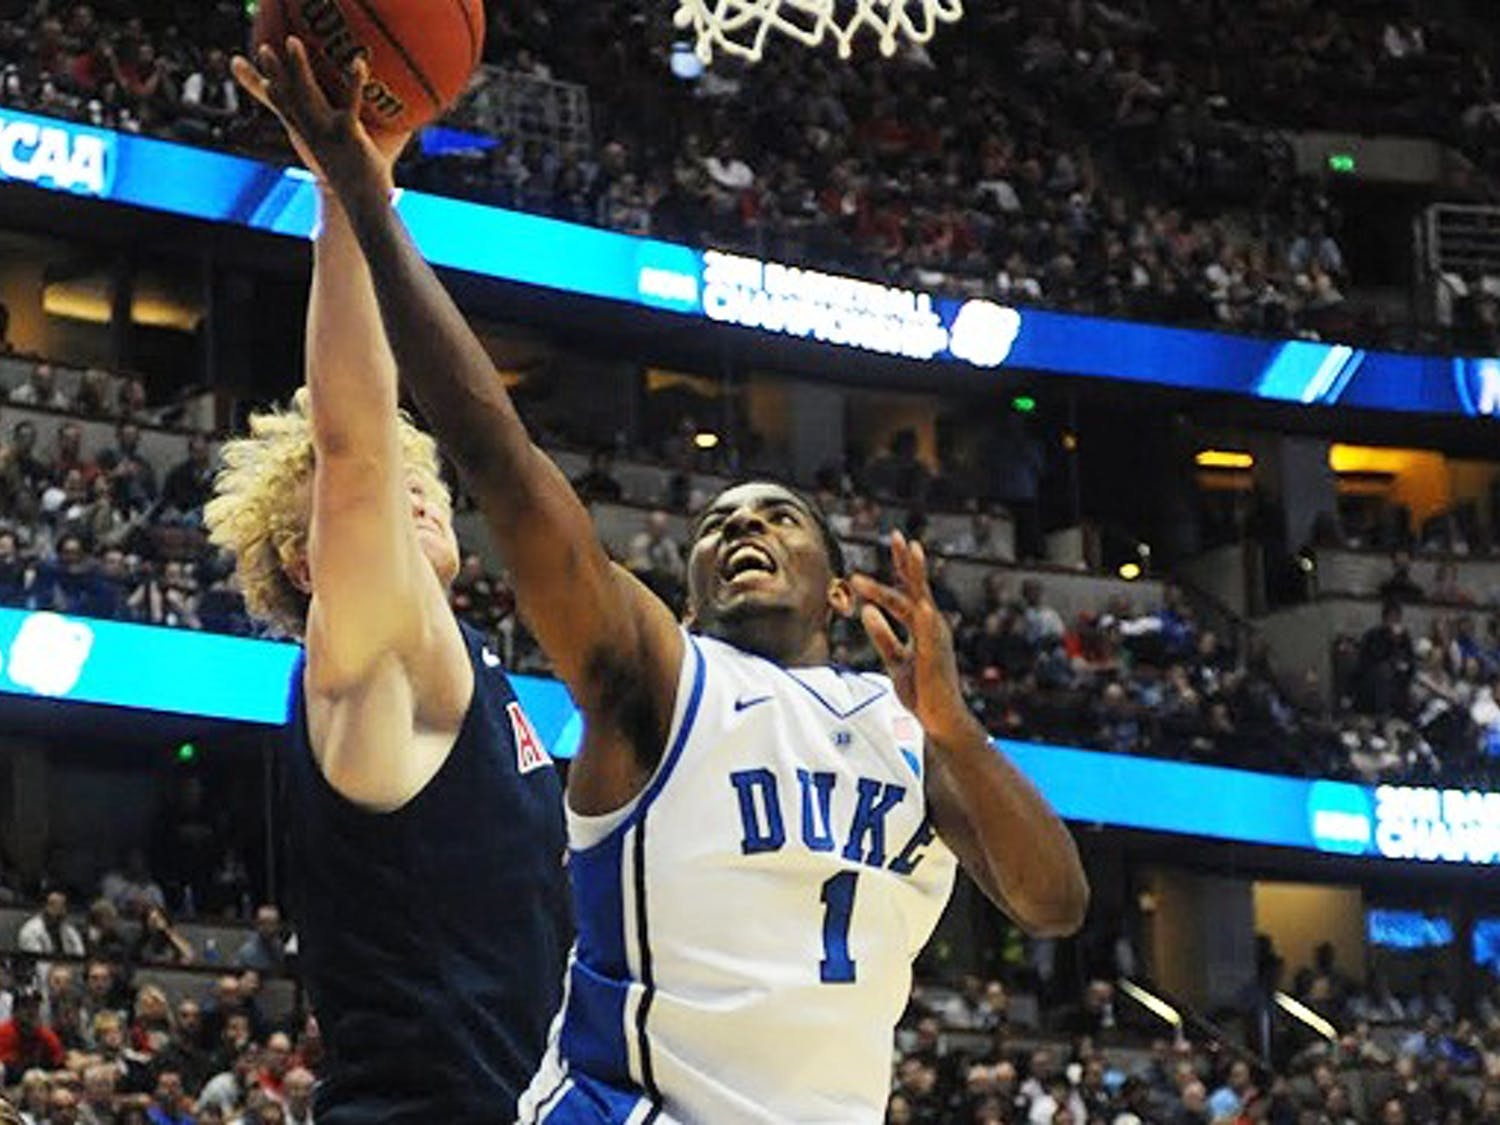 Whether Kyrie Irving will return is just one of the questions Duke fans will be faced with in the future.